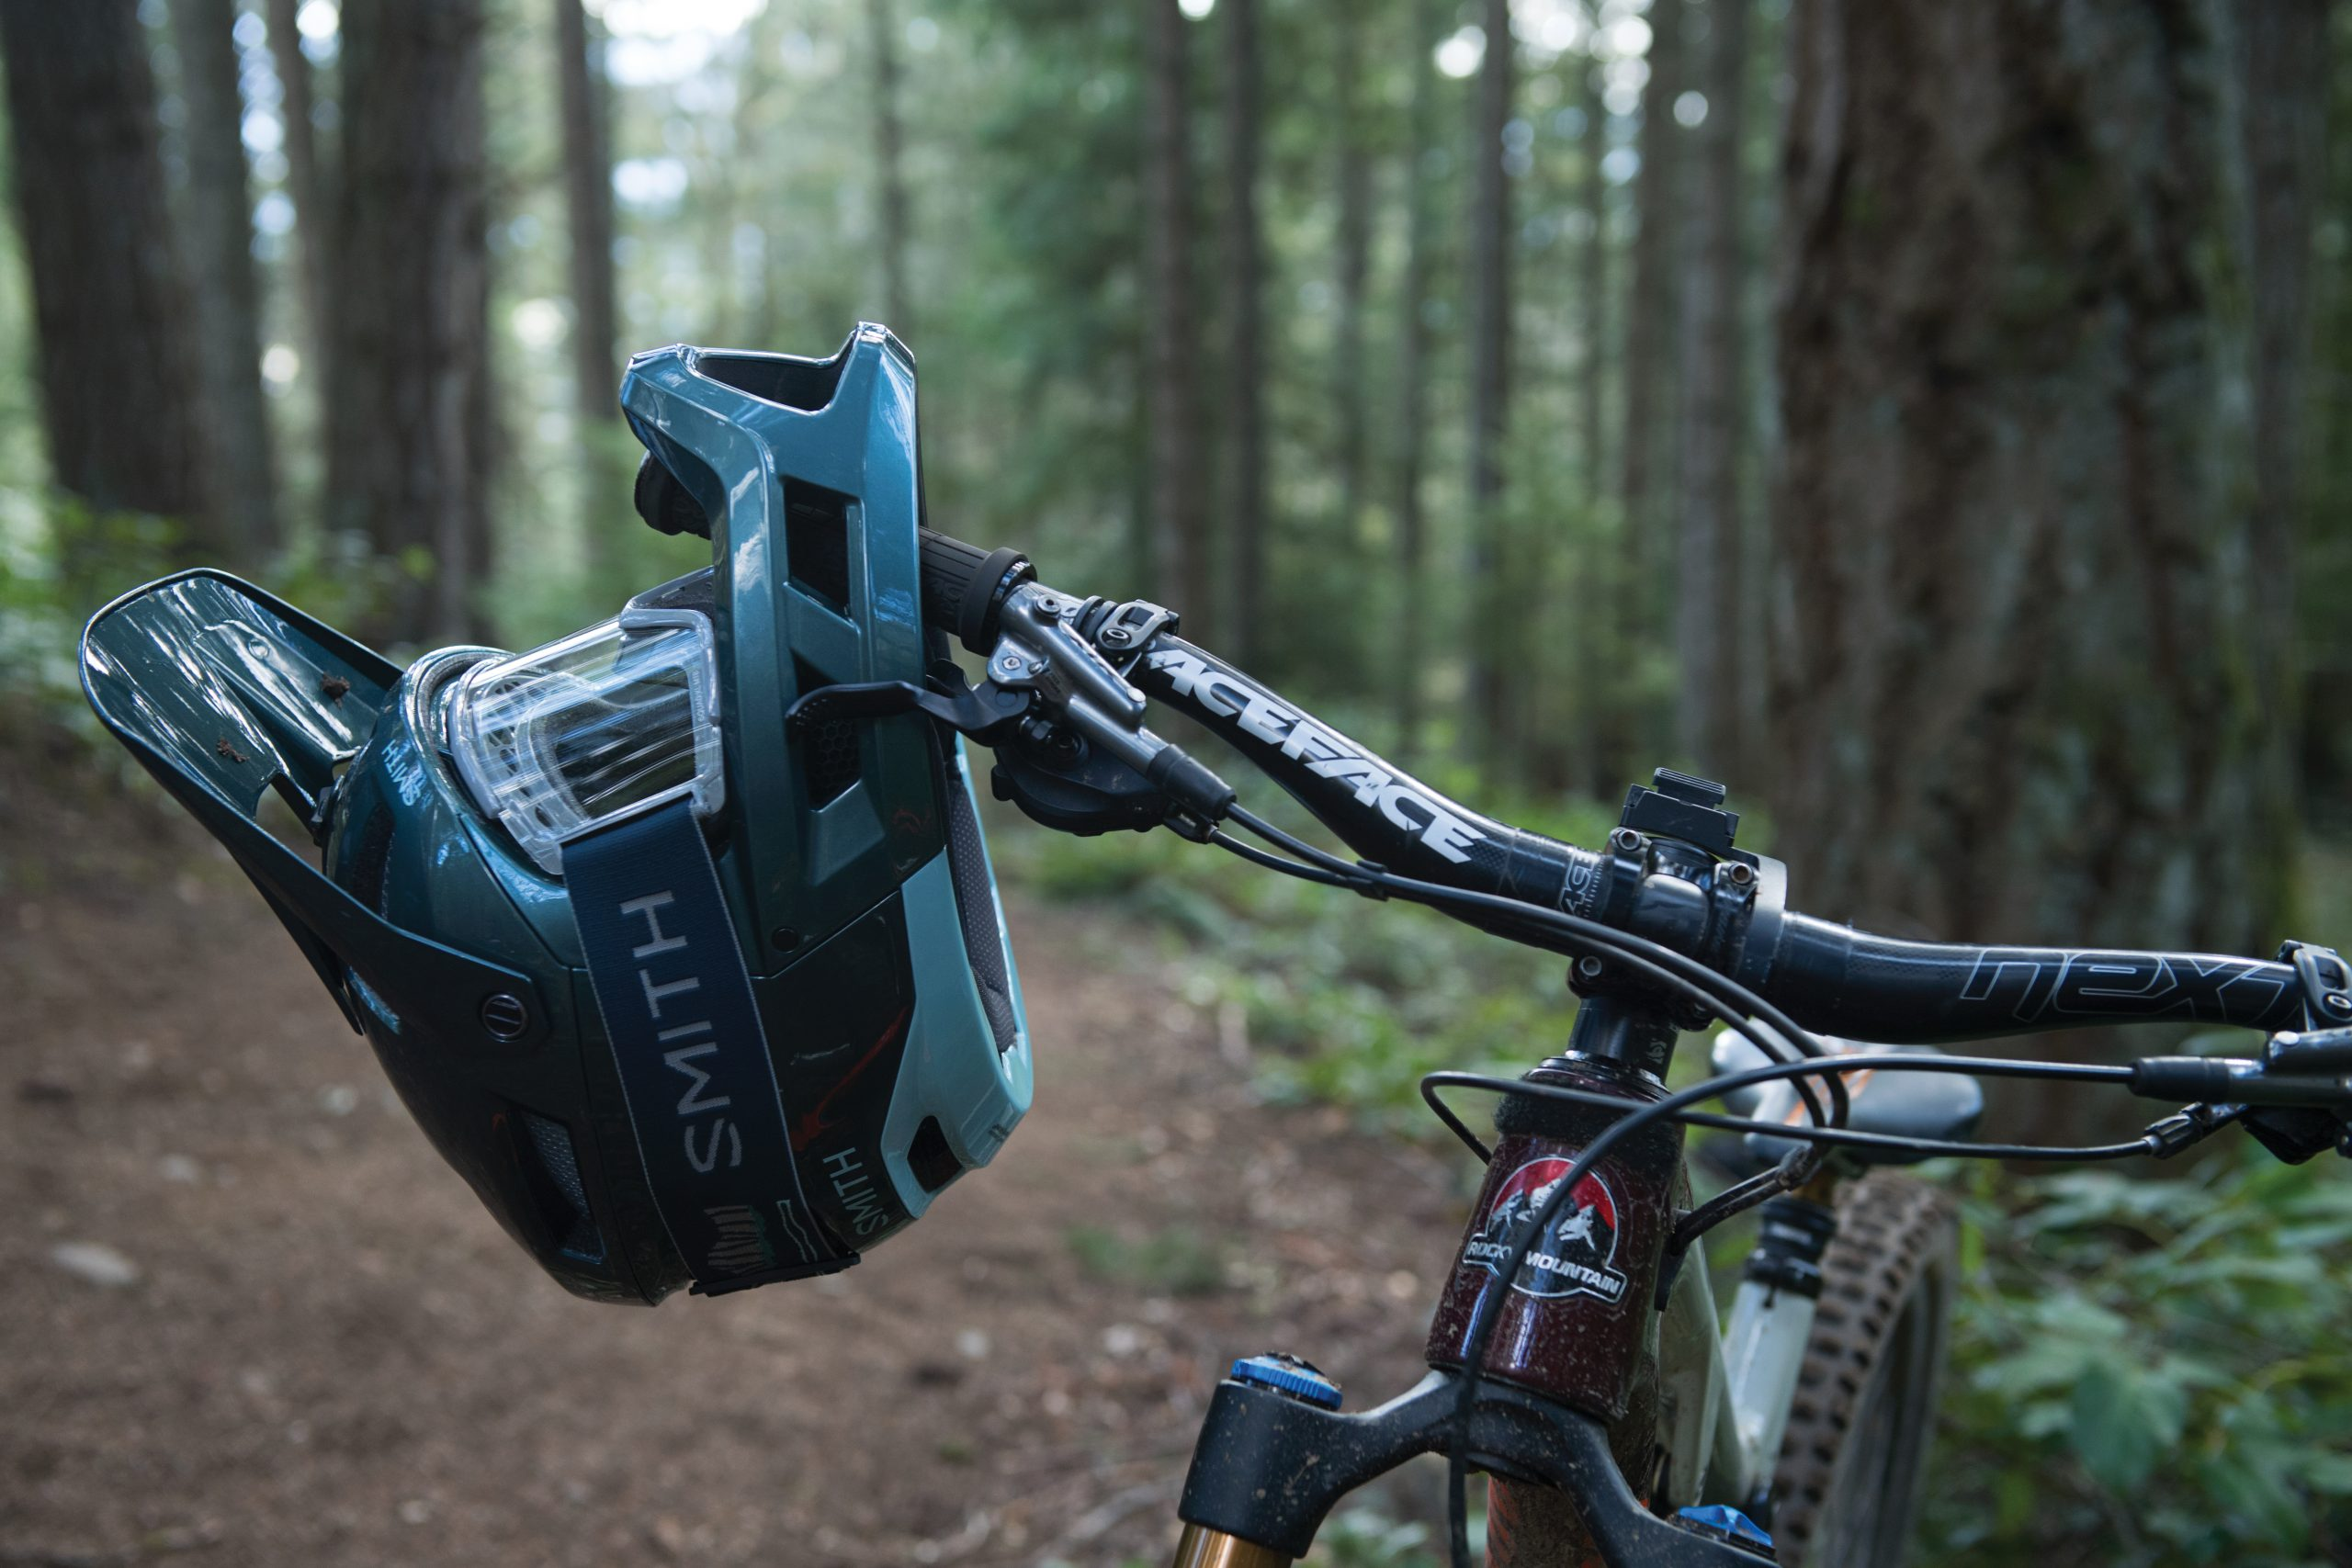 New 'Mainline' enduro helmet from Smith Optics